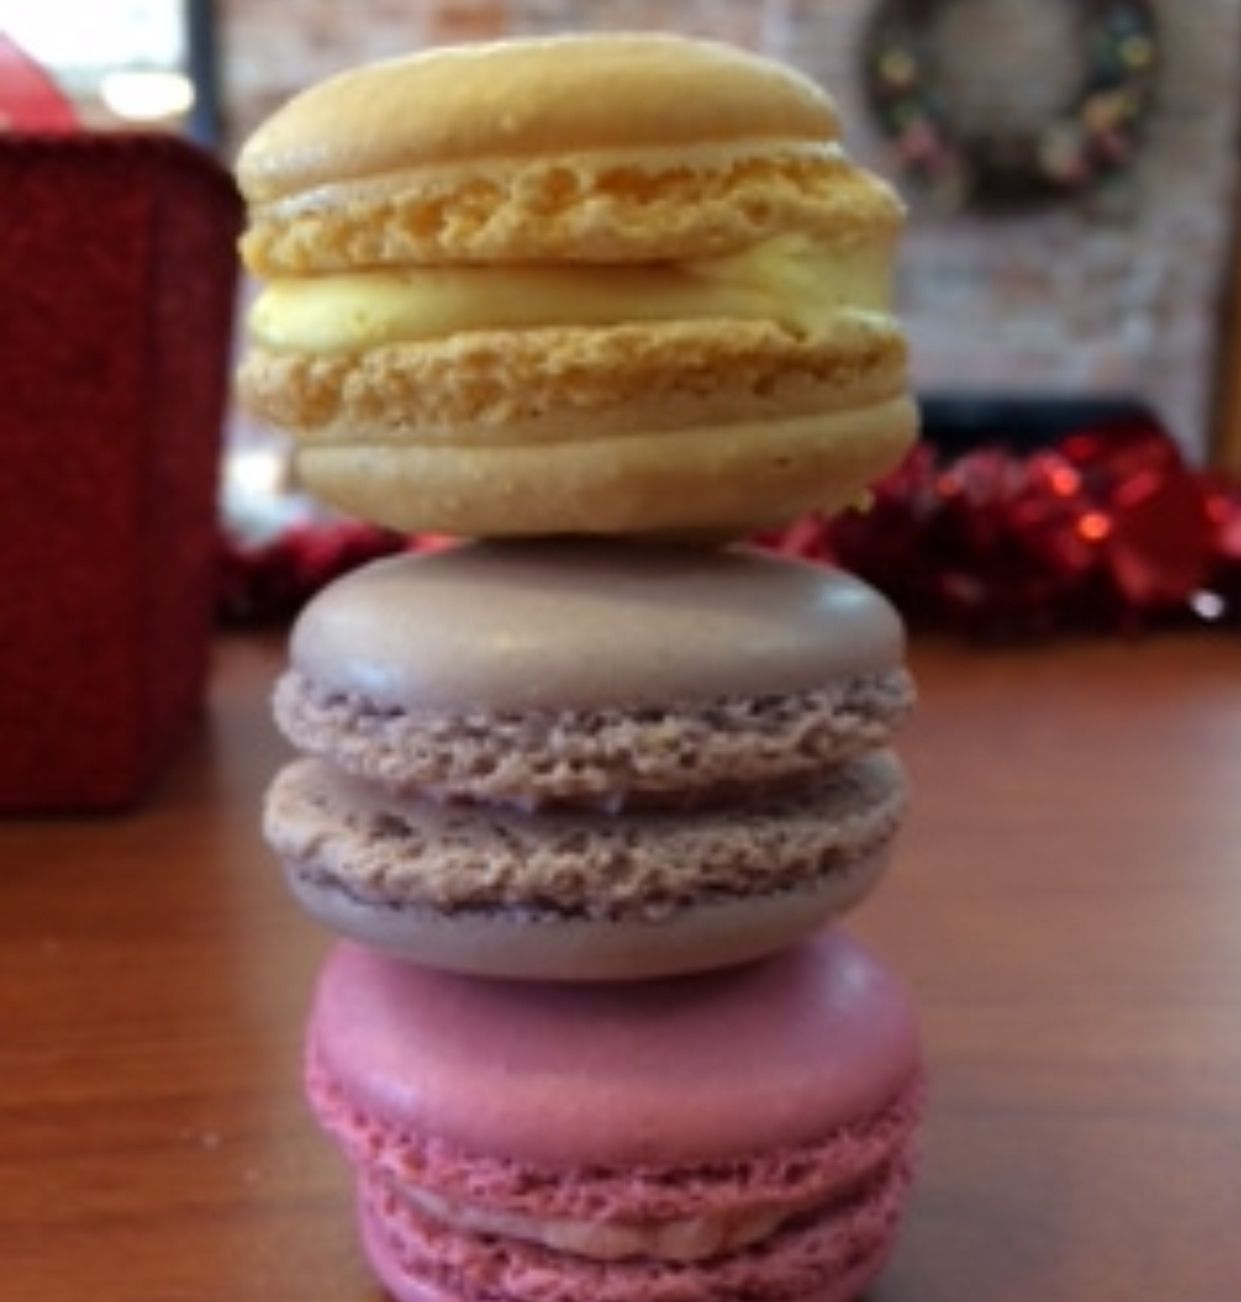 Macarons from Jacqueline's Patisserie . Food, Desserts, Patisserie